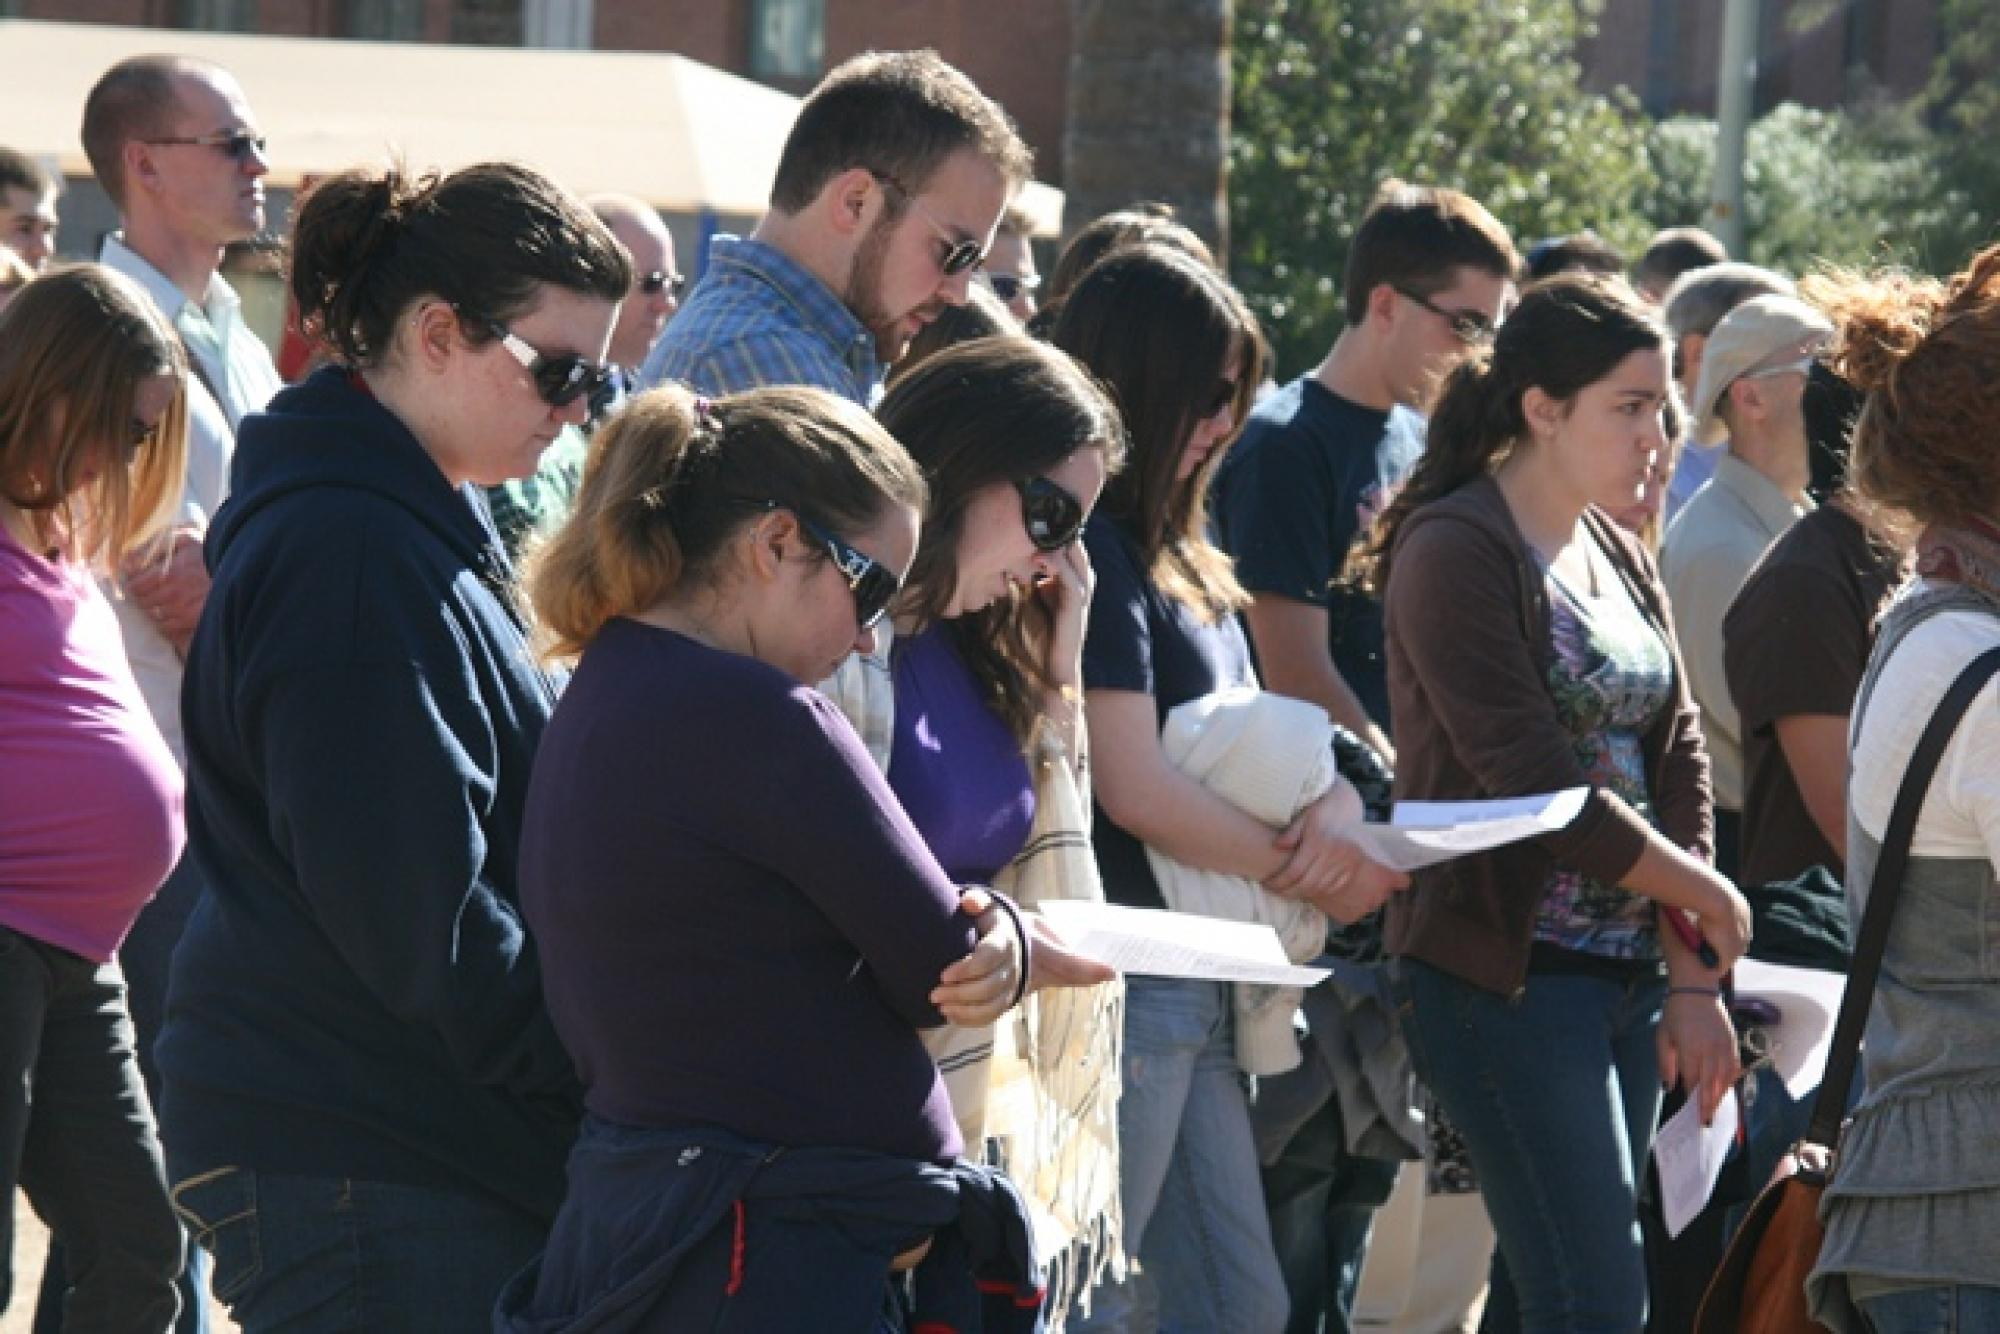 Hundreds of people attended an interfaith service at the UA Wednesday afternoon during which UA President Robert N. Shelton spoke.